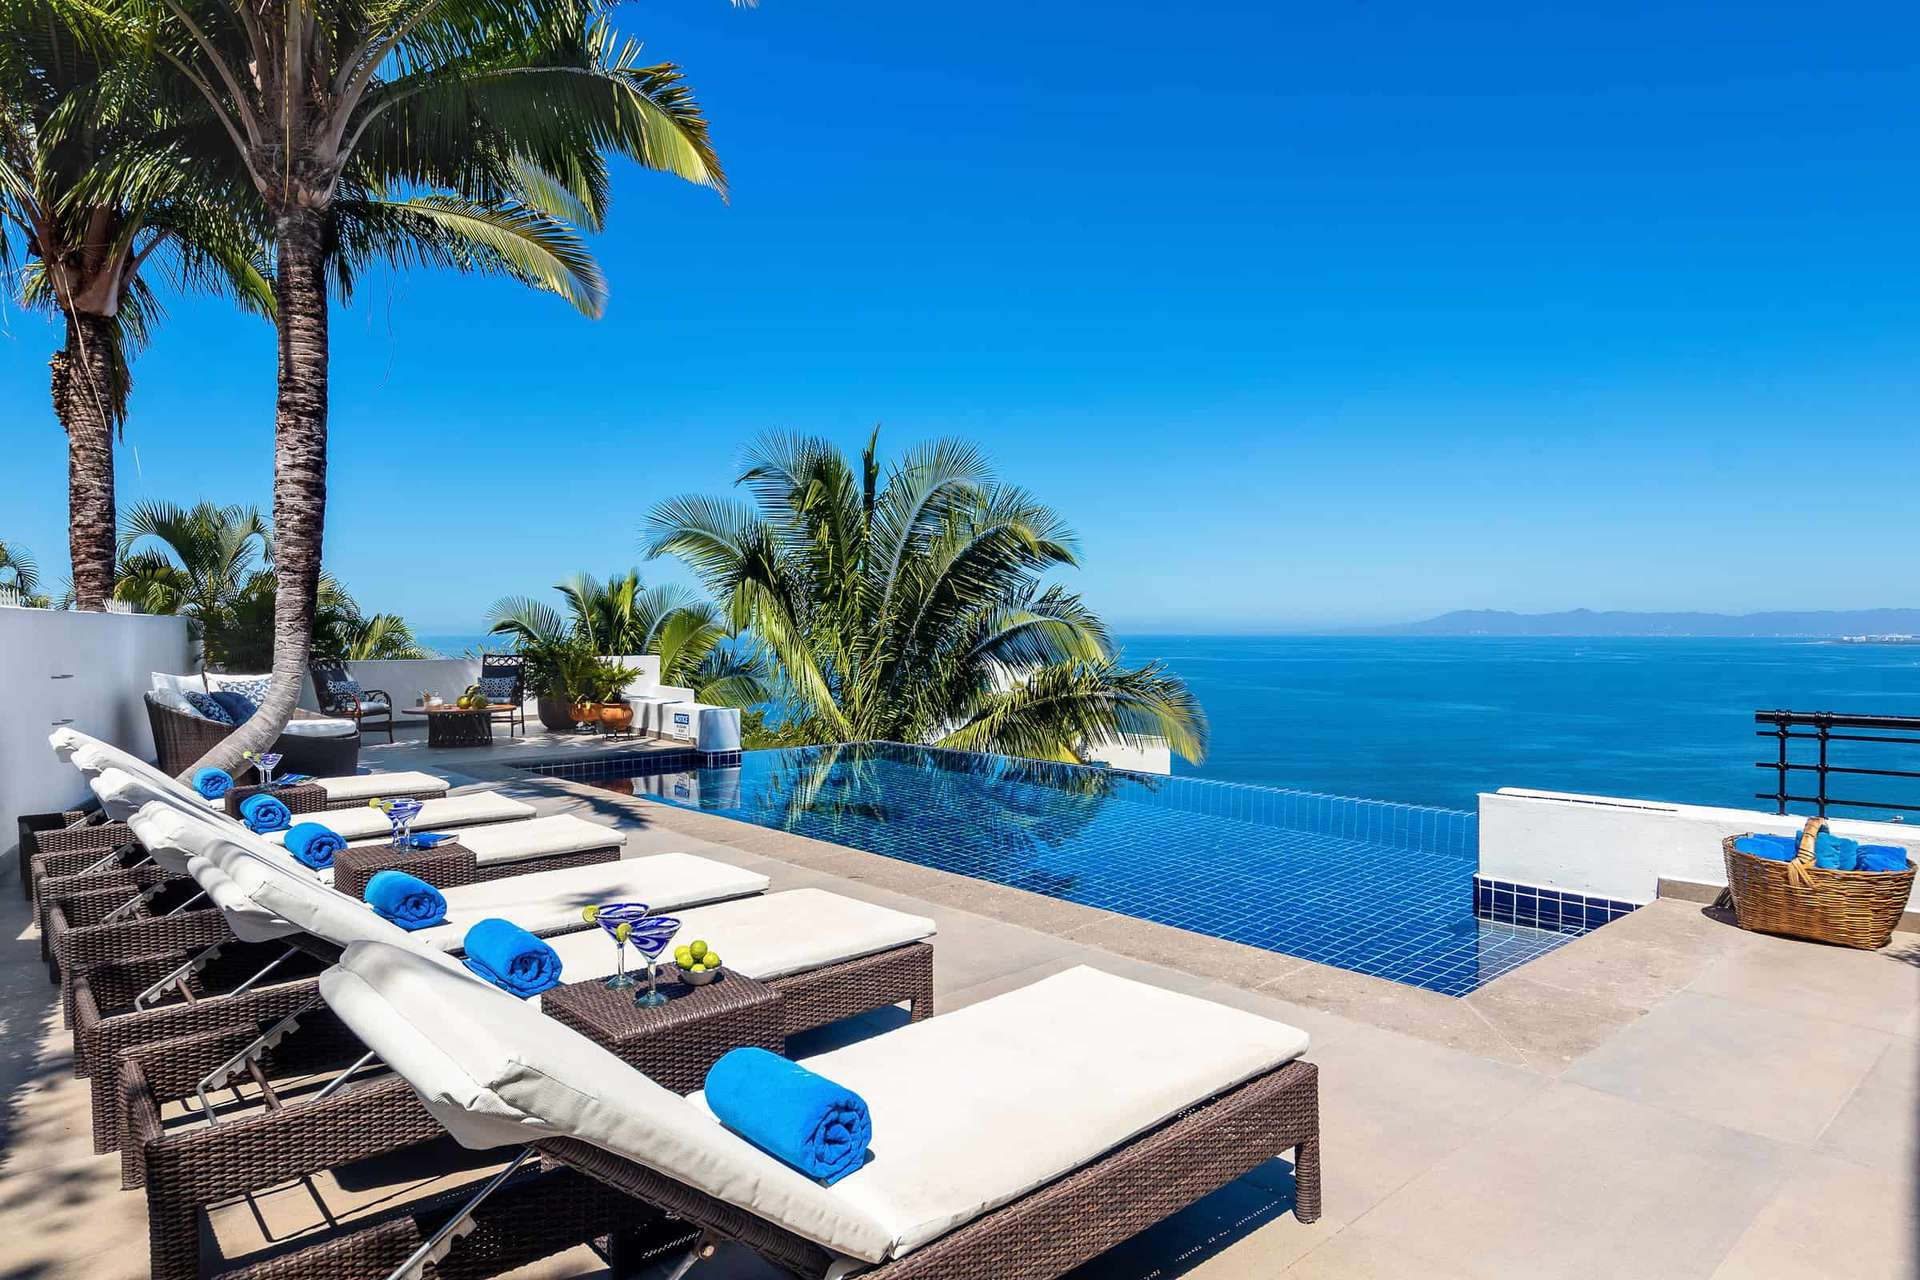 Luxury vacation rentals mexico - Puerto vallarta - Amapas - No location 4 - Villa Lucia - Image 1/49